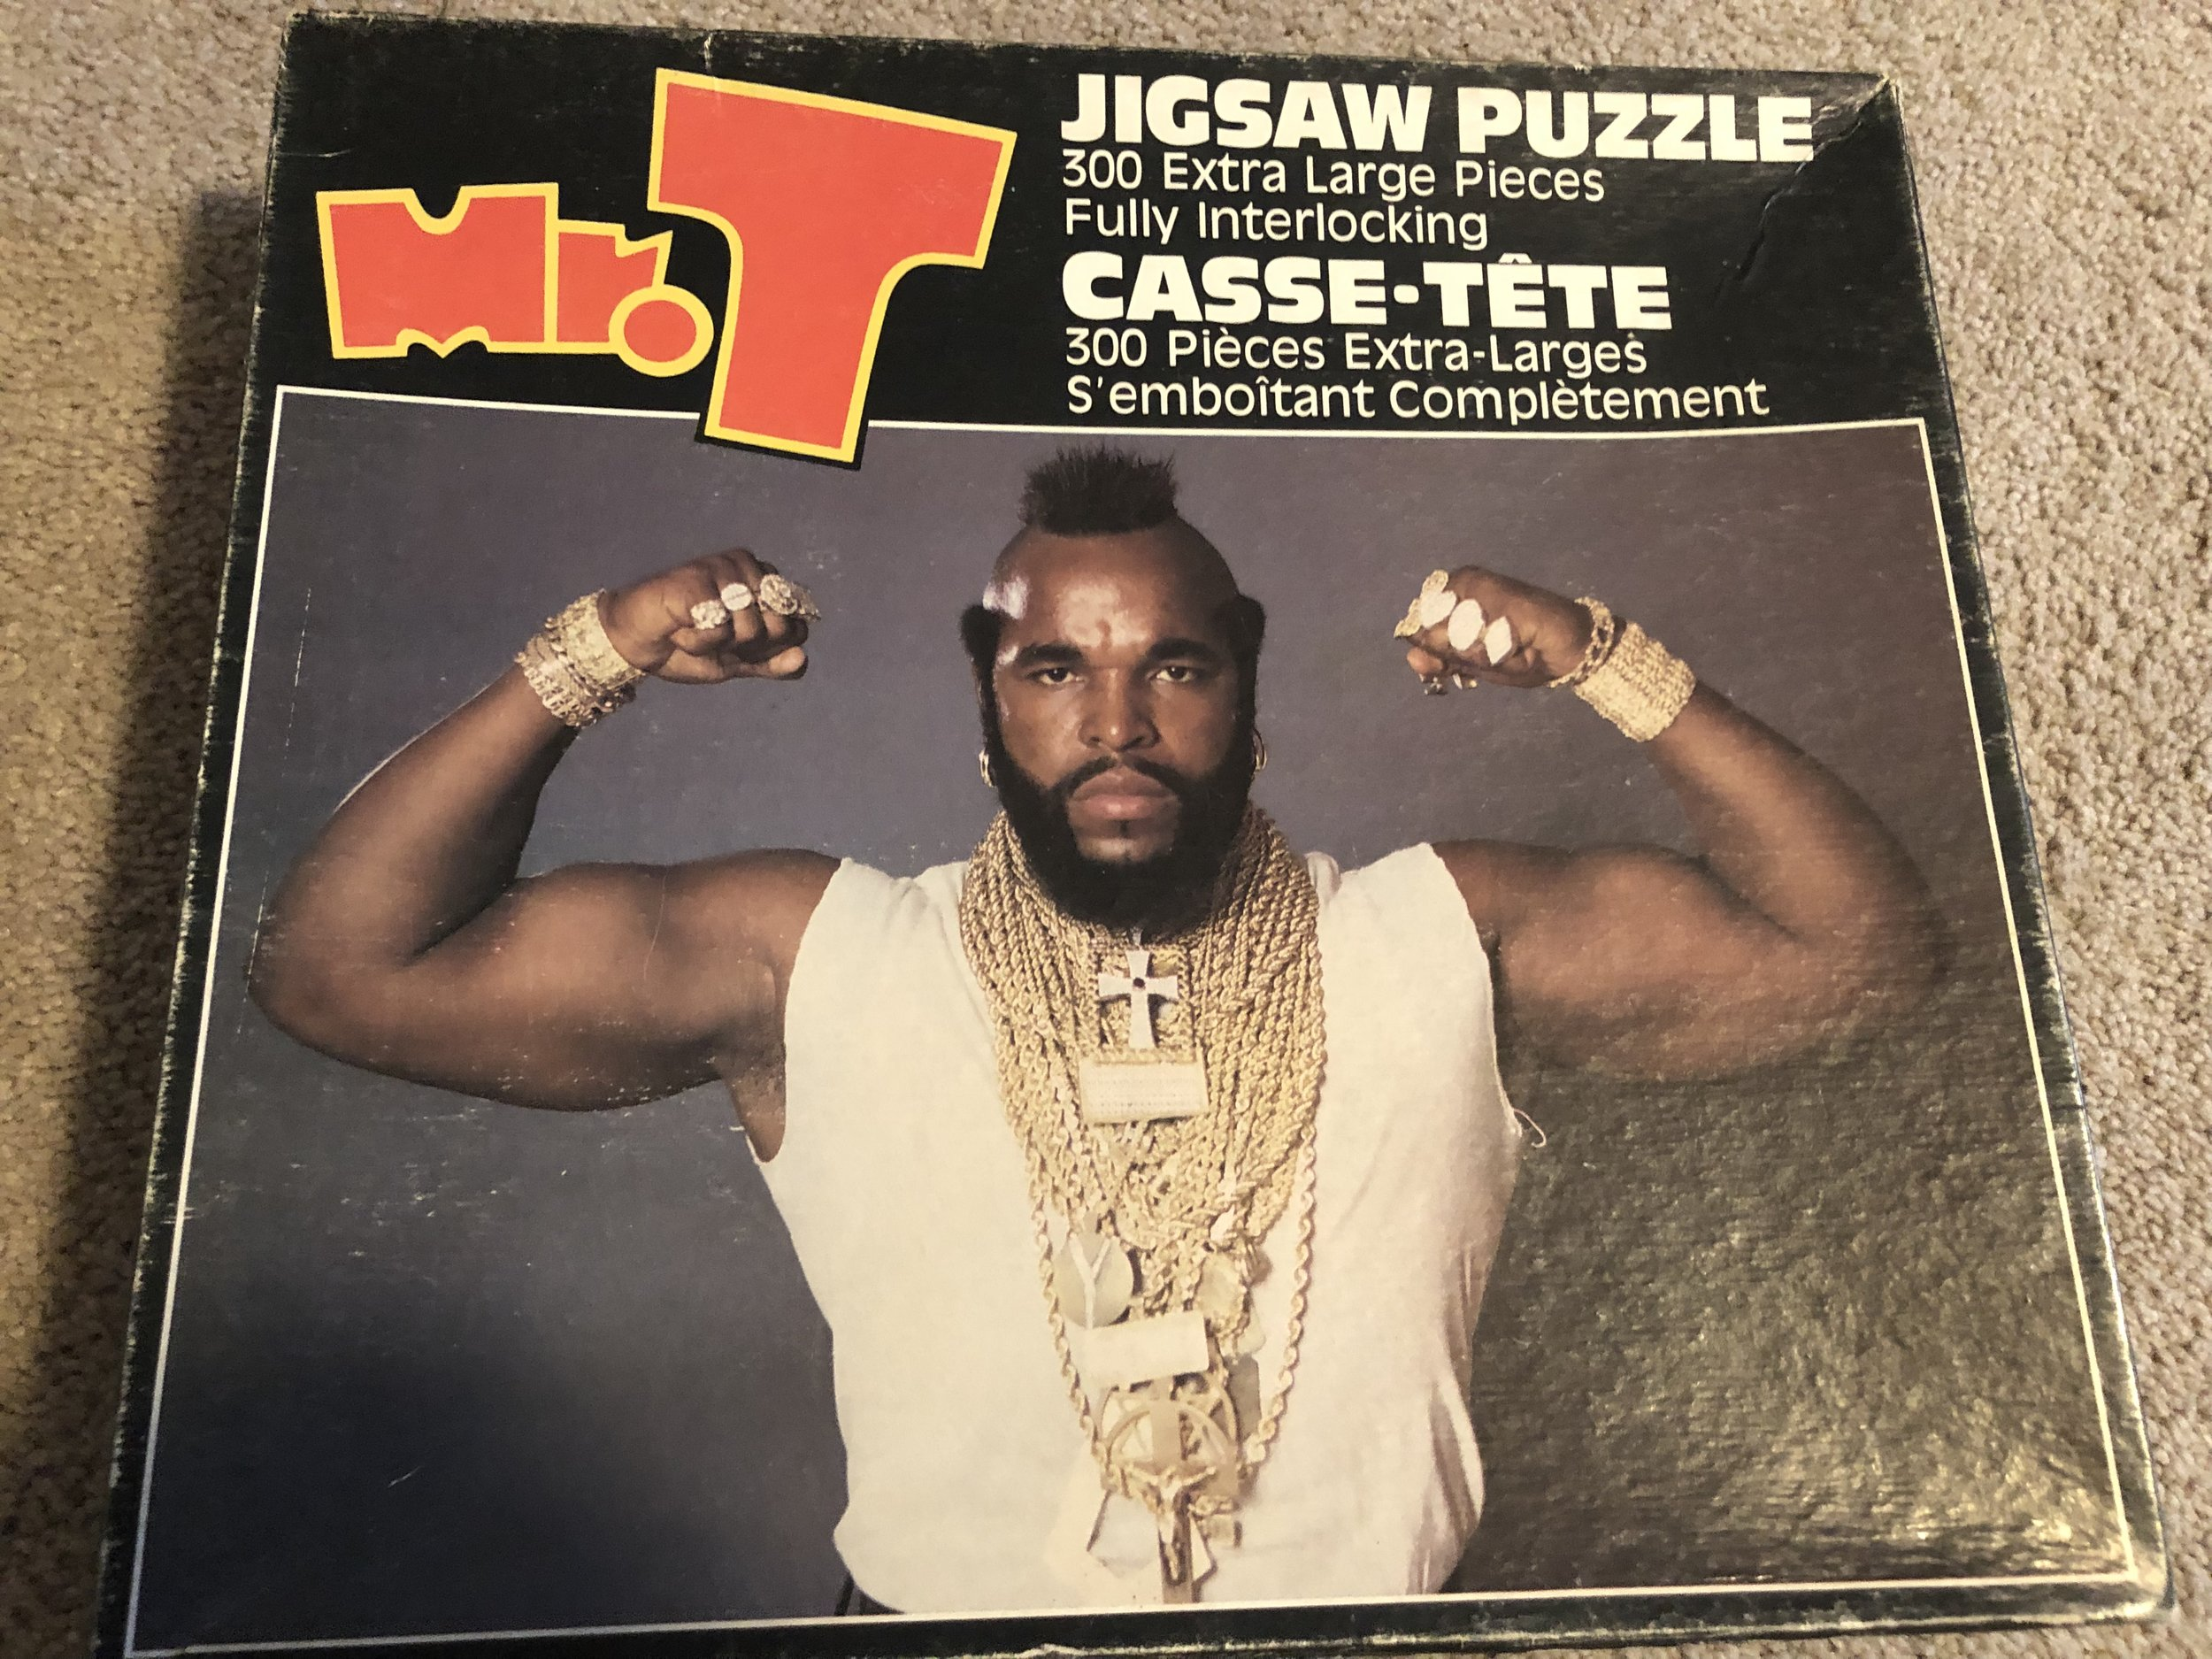 I Pity the Fool Who Can't Solve This Puzzle